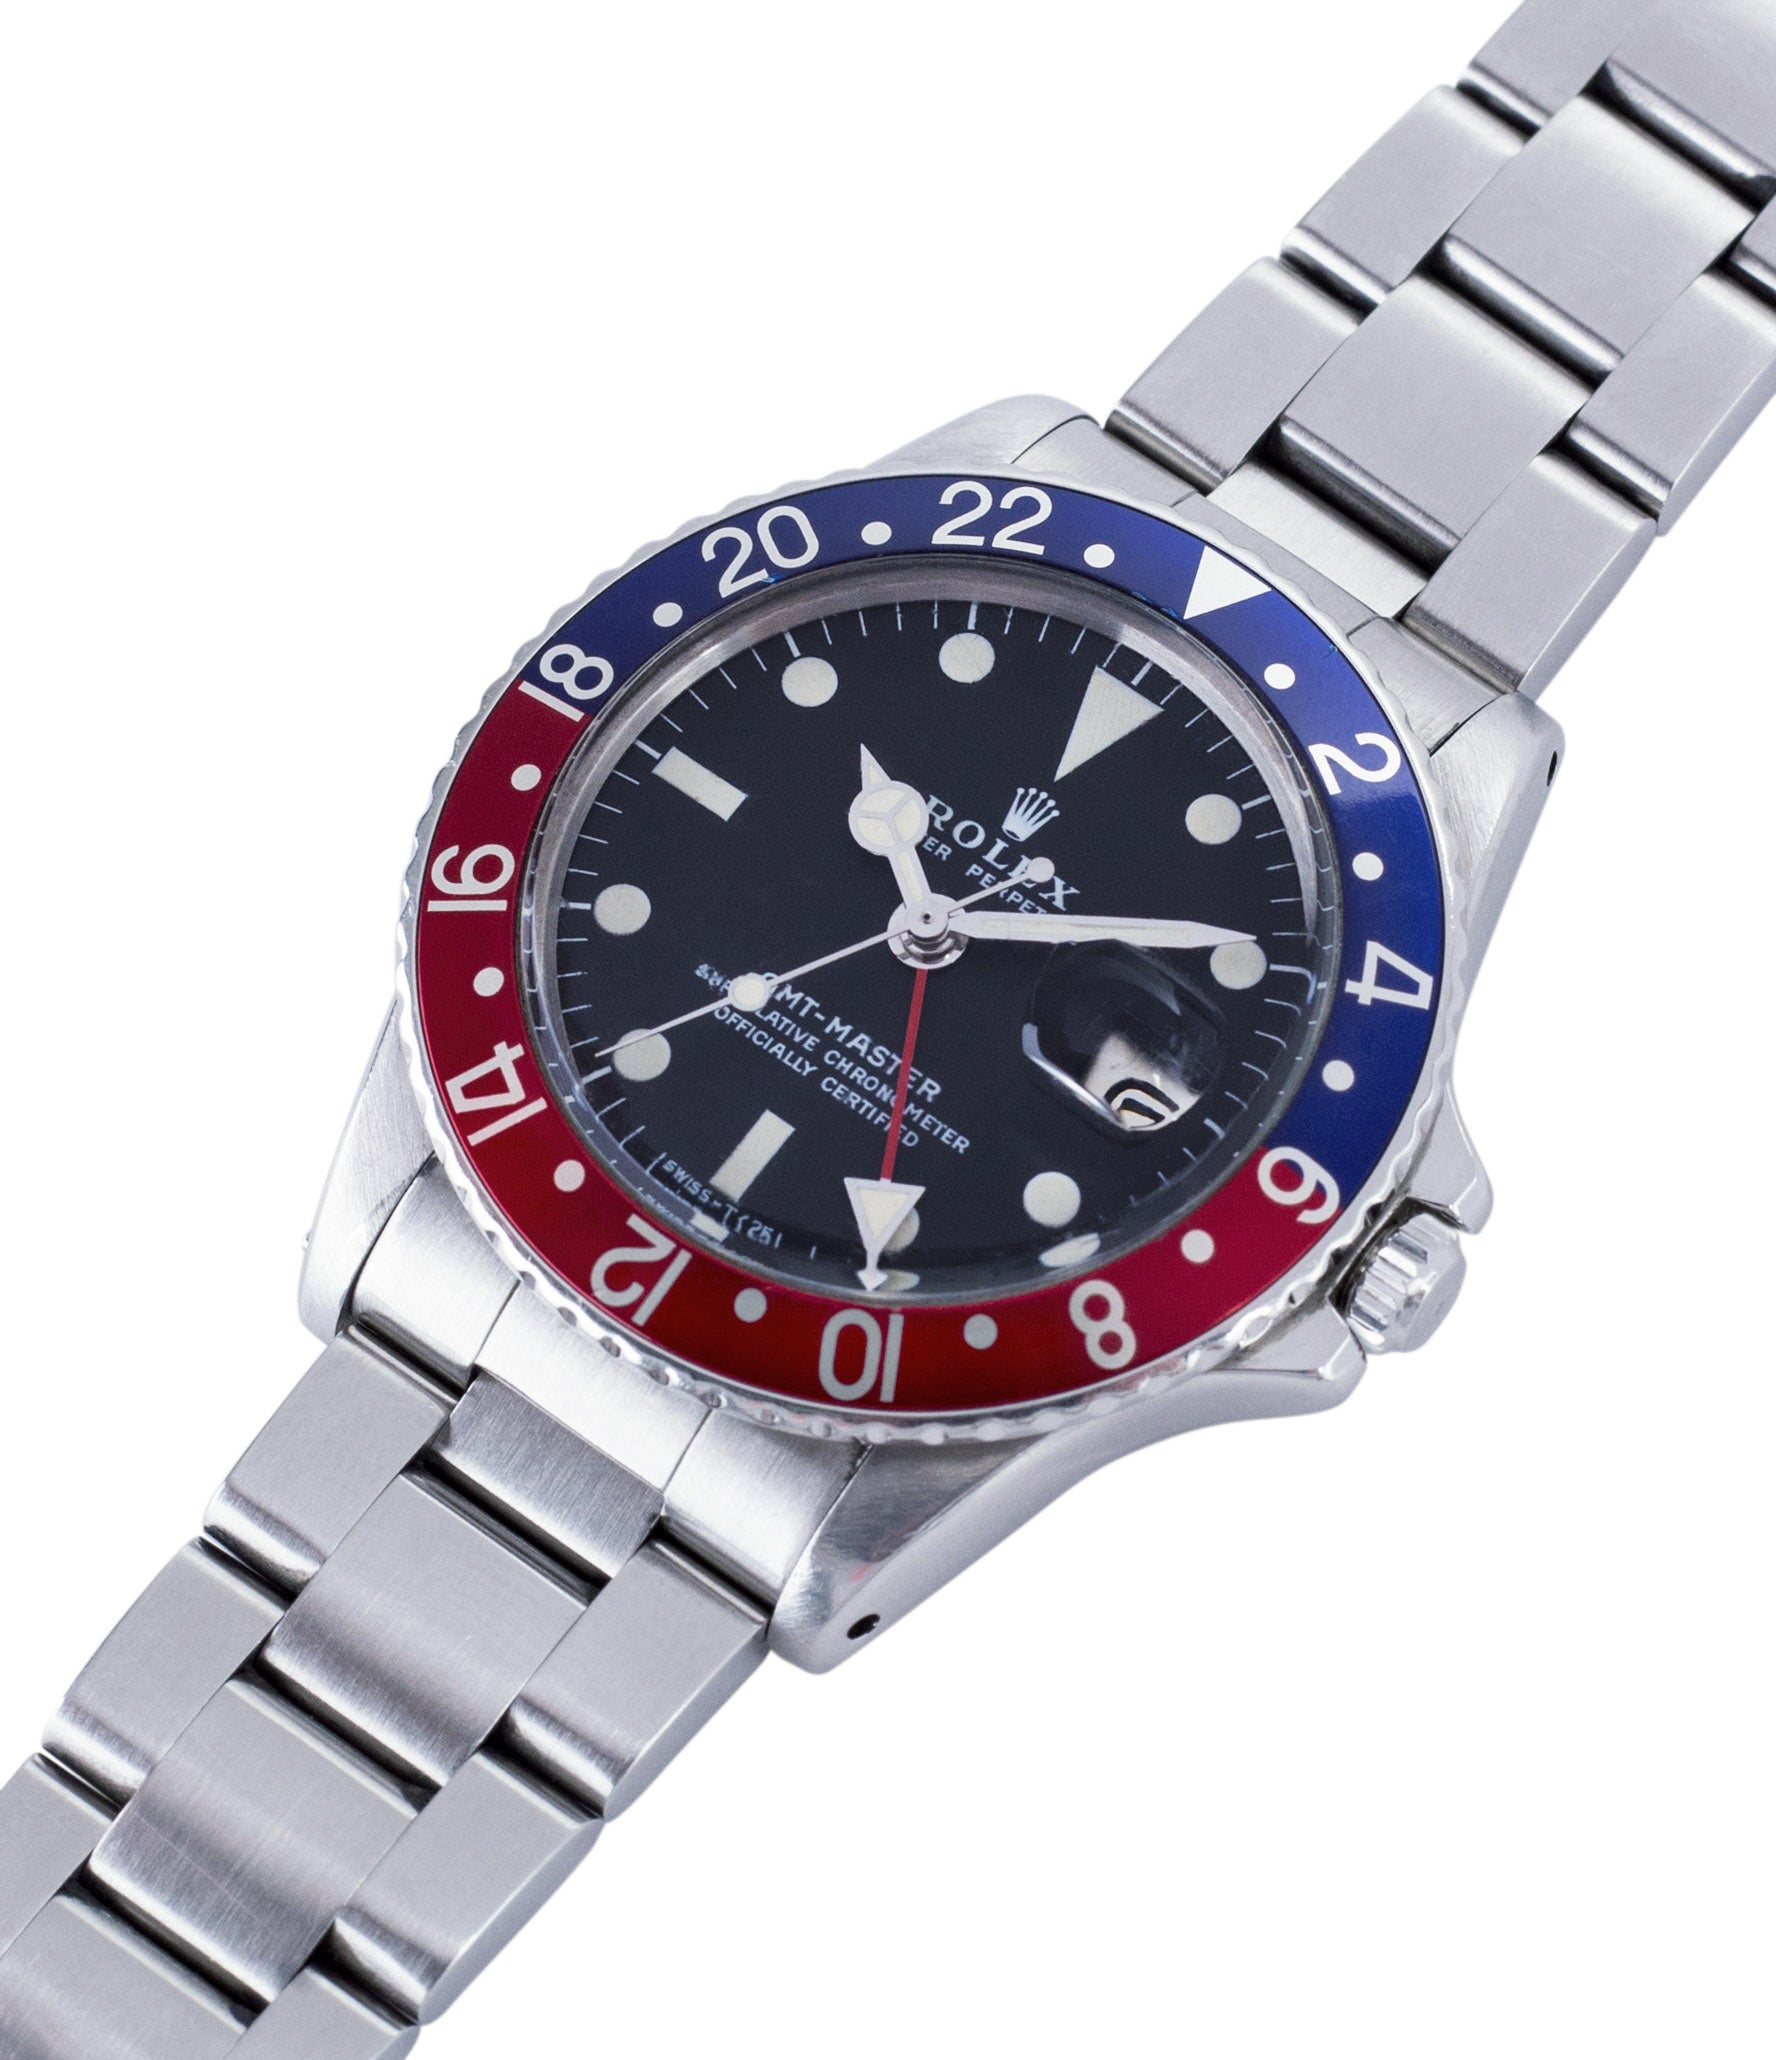 Rolex GMT Master 1675 vintage steel traveller sport watch Pepsi bezel for sale online at A Collected Man London vintage watch specialist